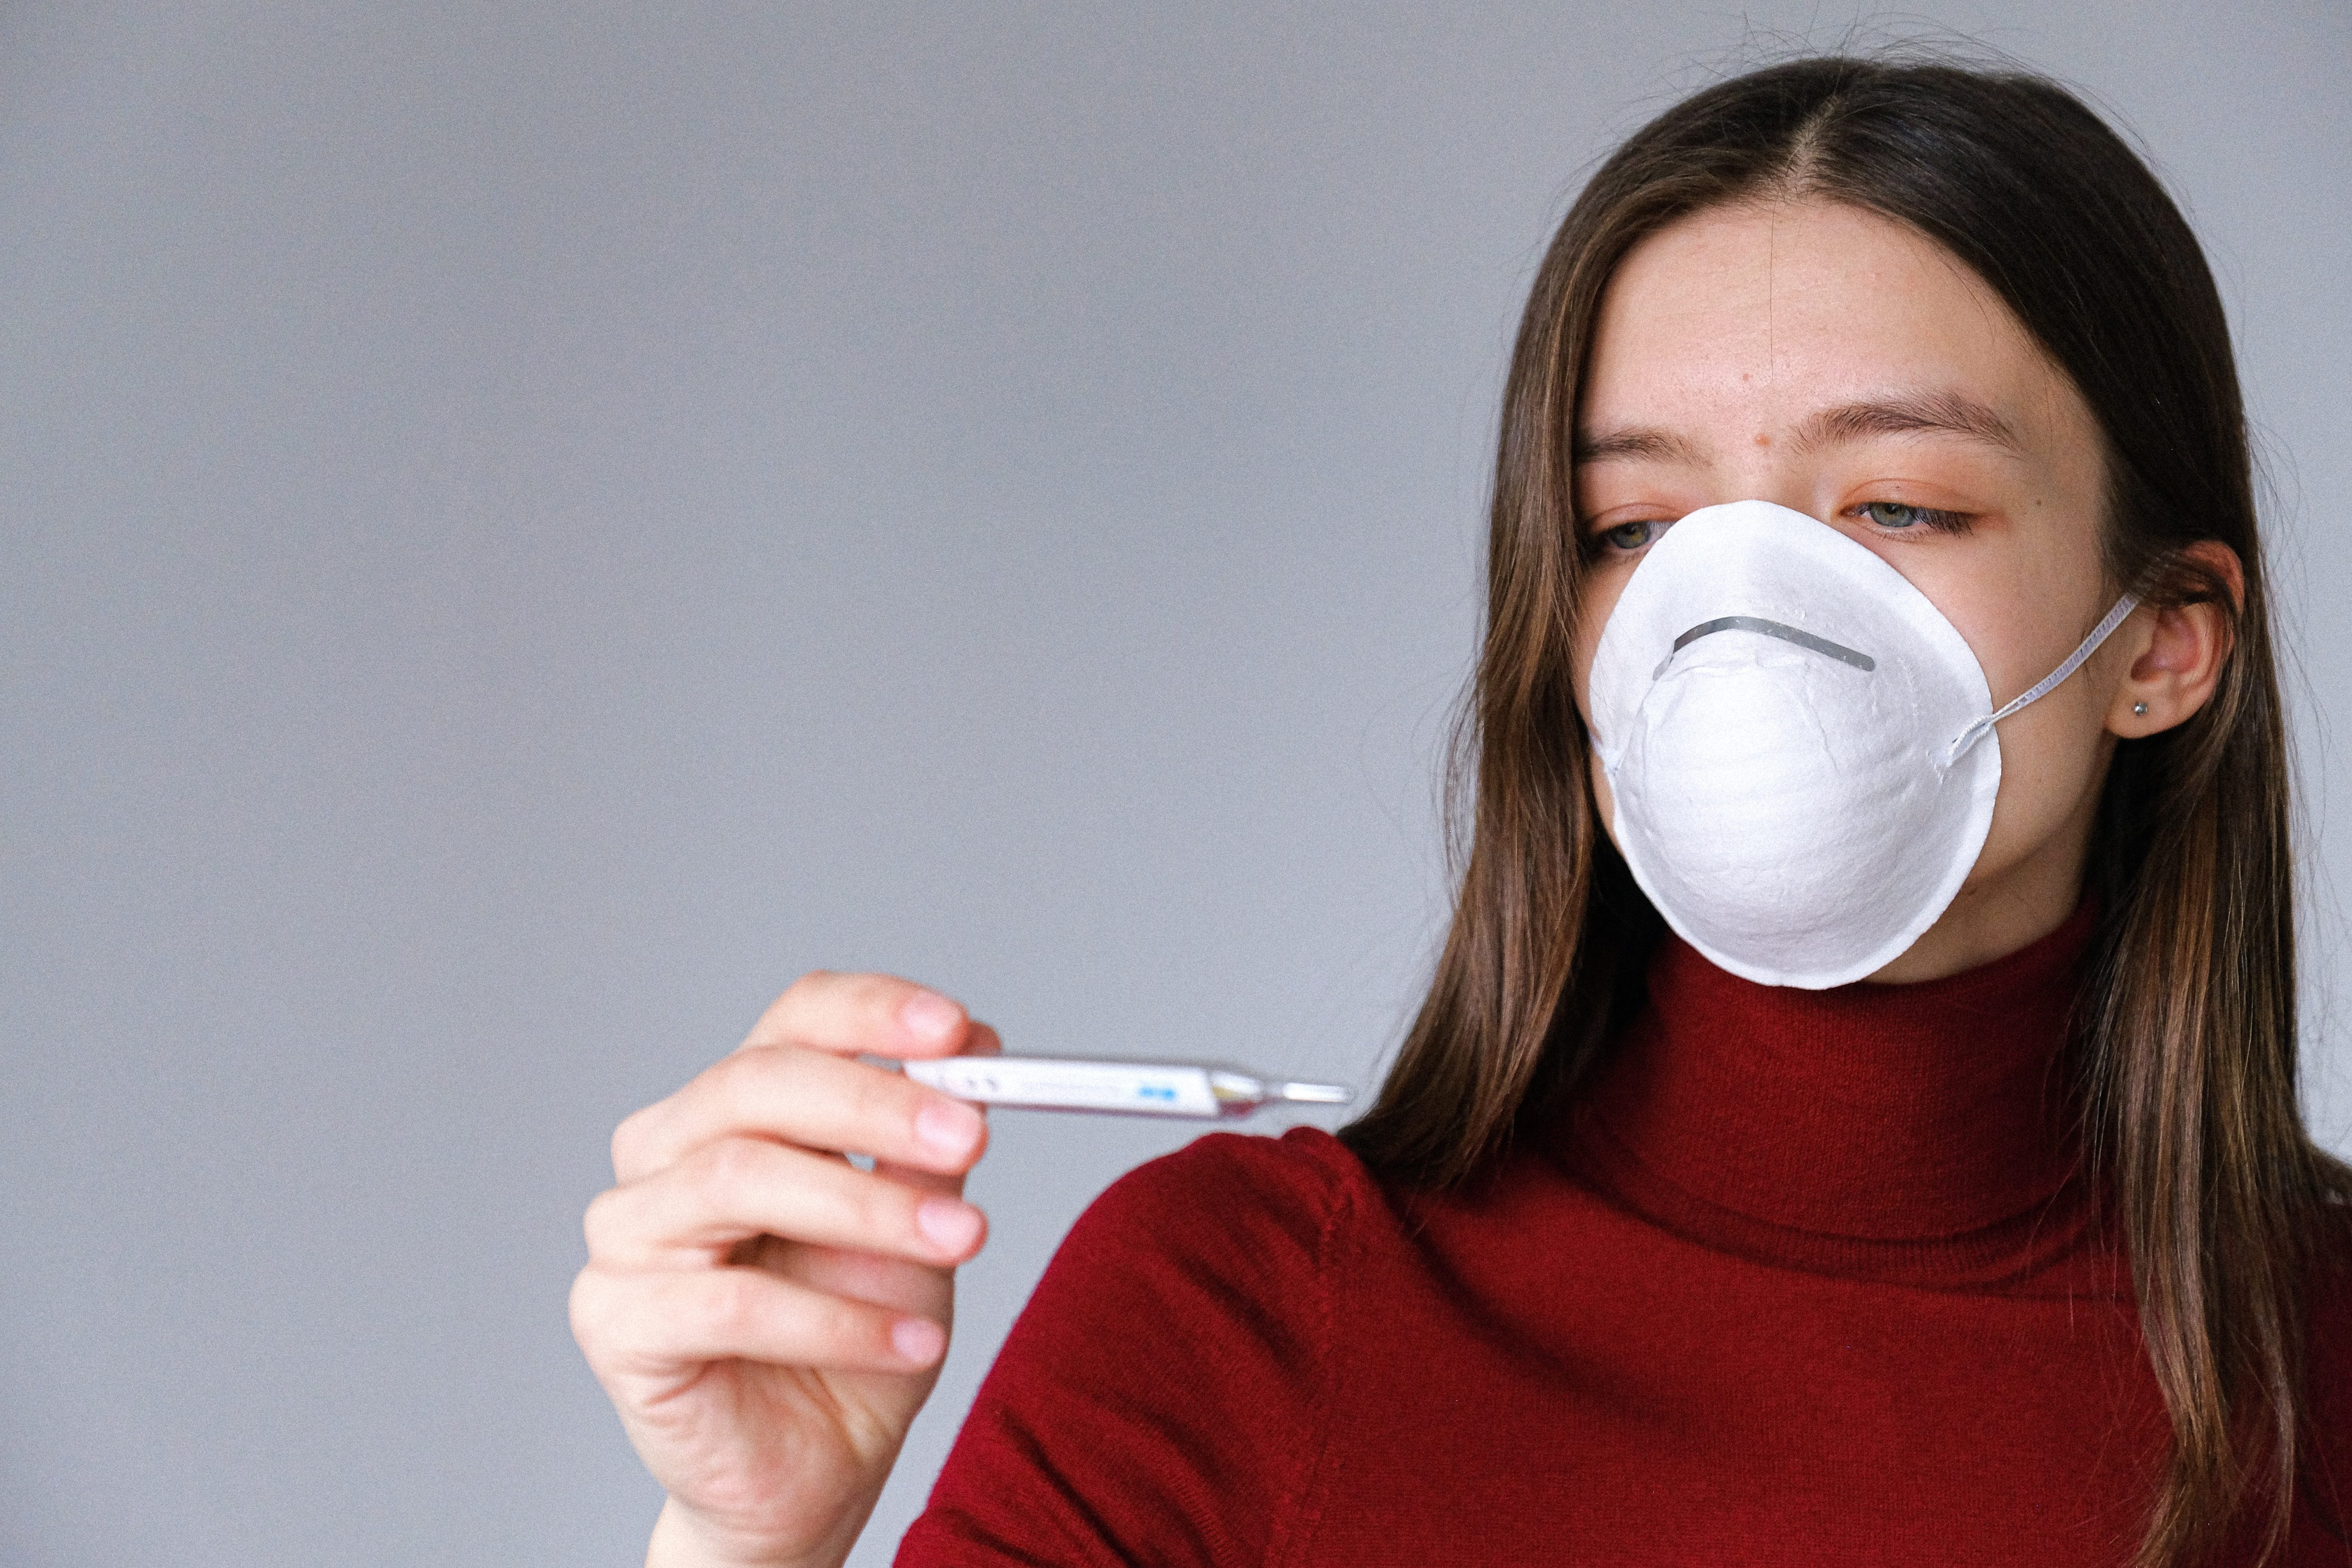 woman in a white mask and red shirt looking at a thermometer